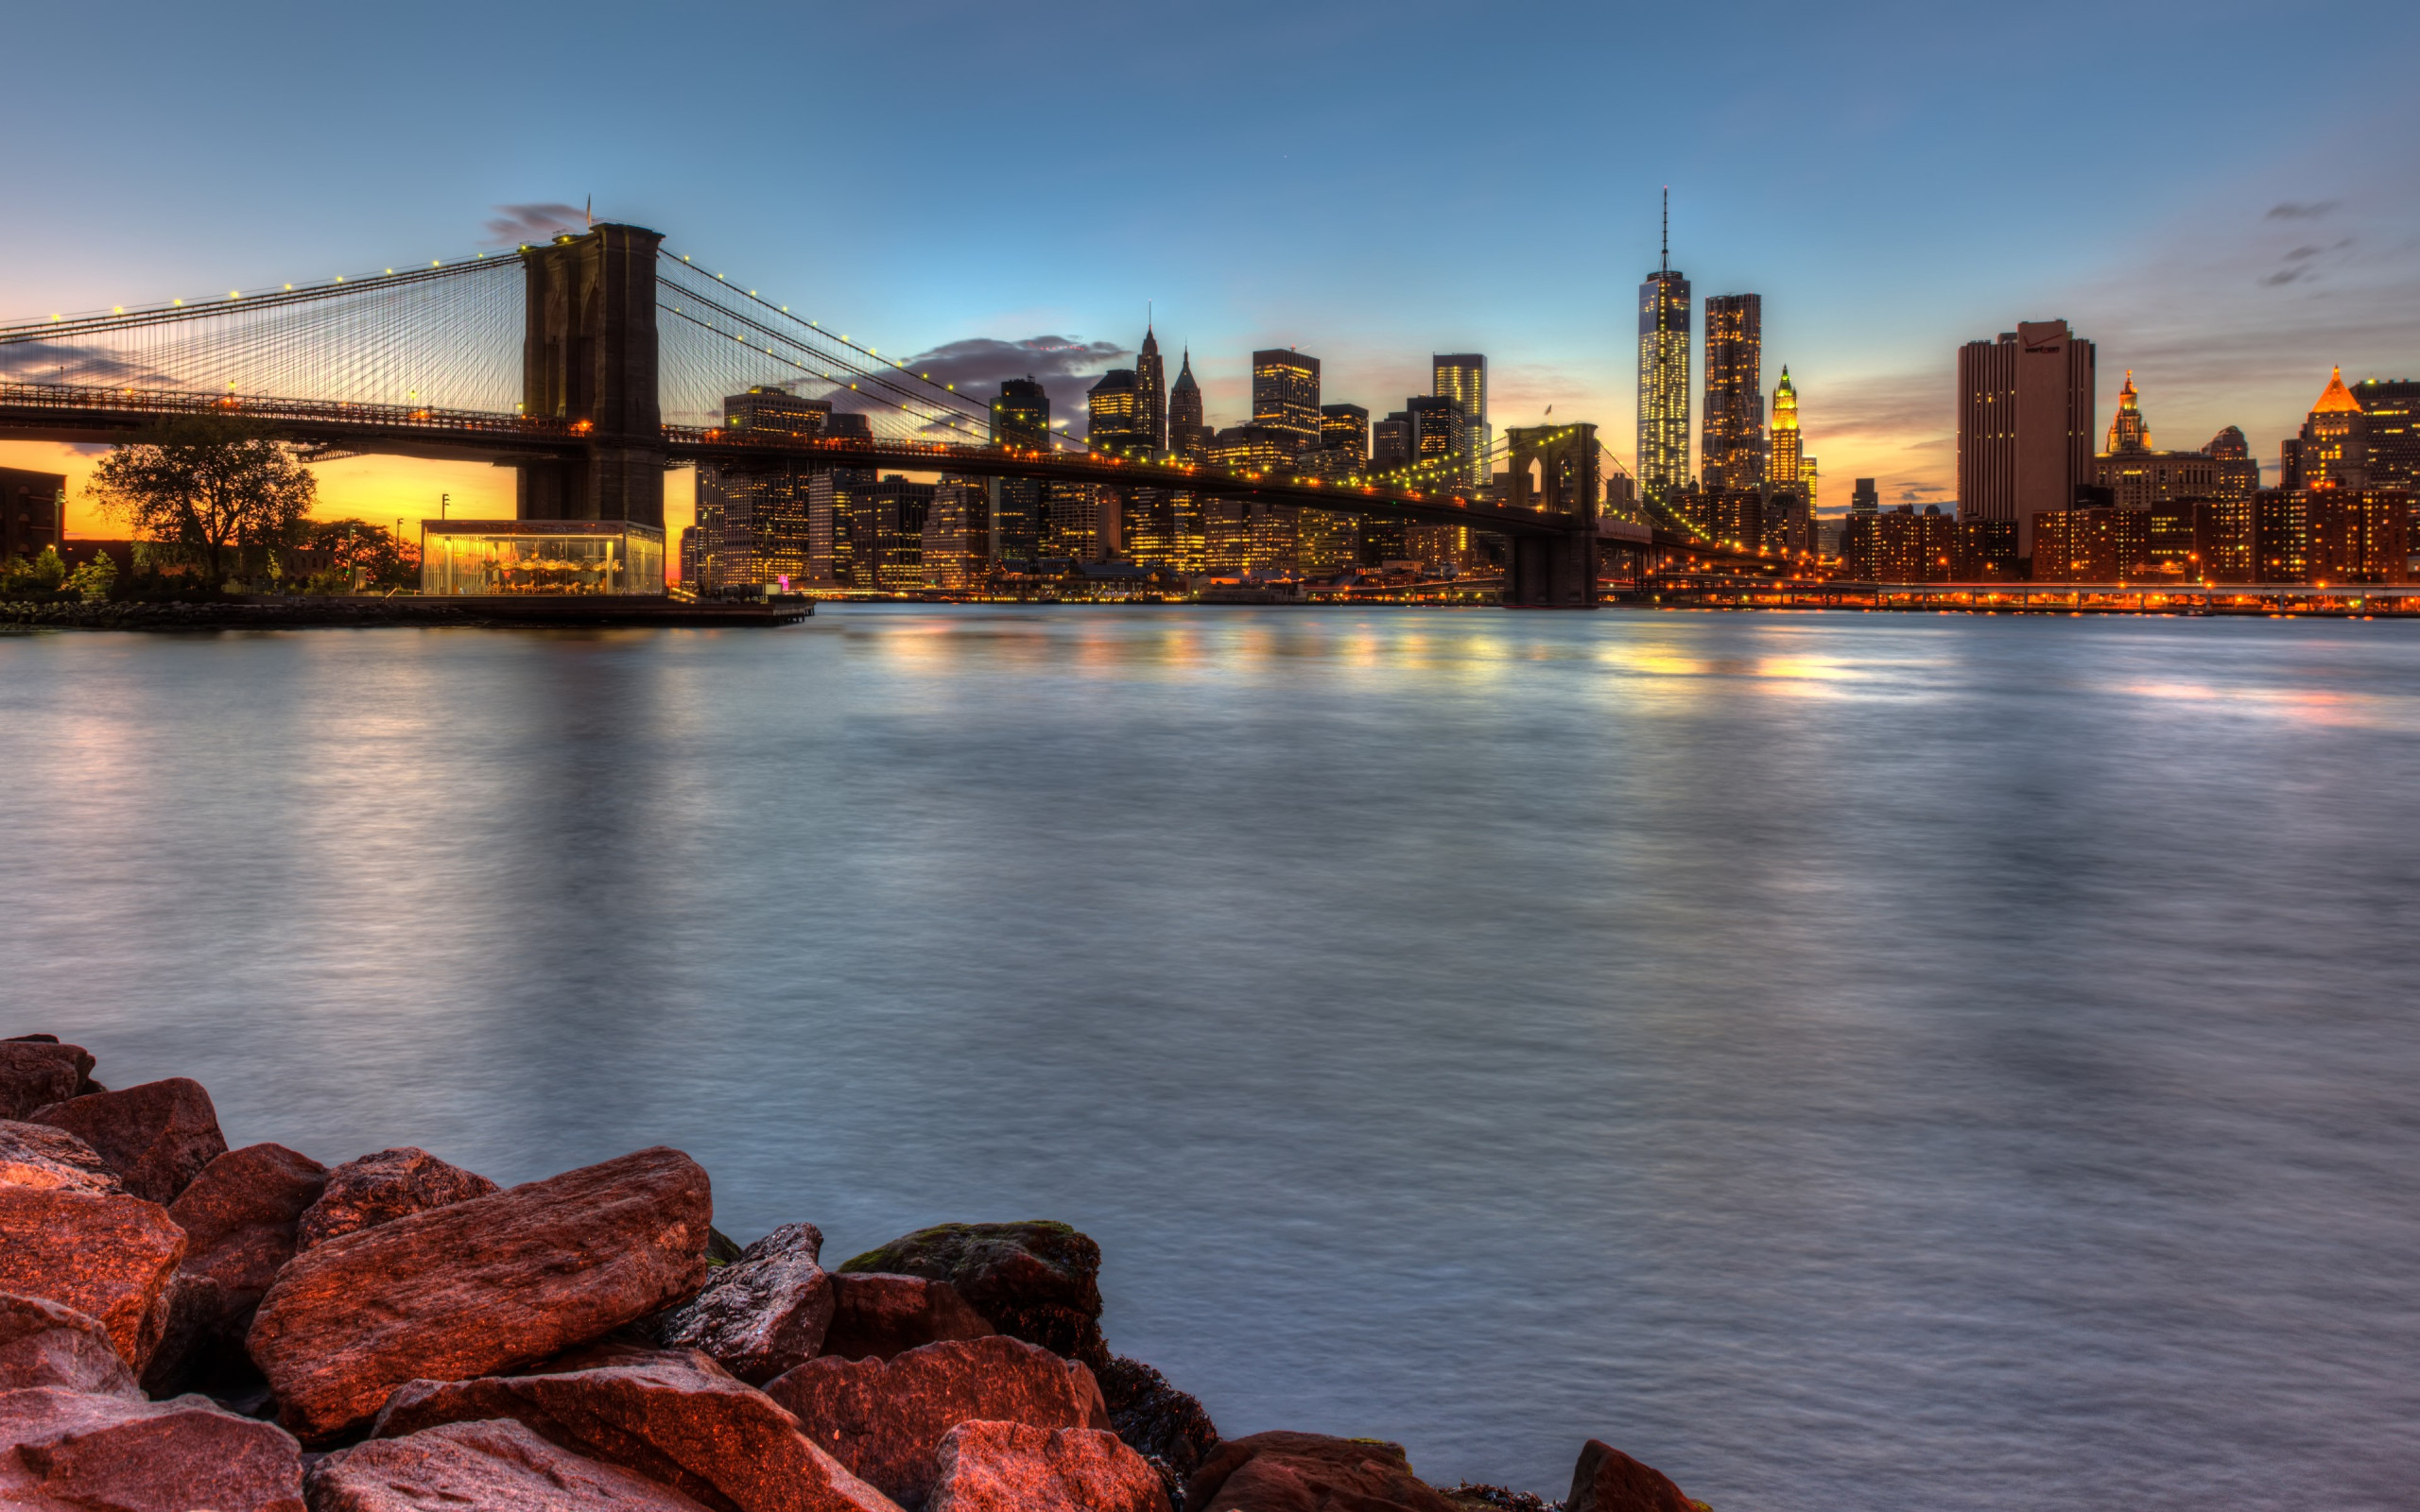 Brooklyn Bridge, NY, USA wallpaper 2560x1600